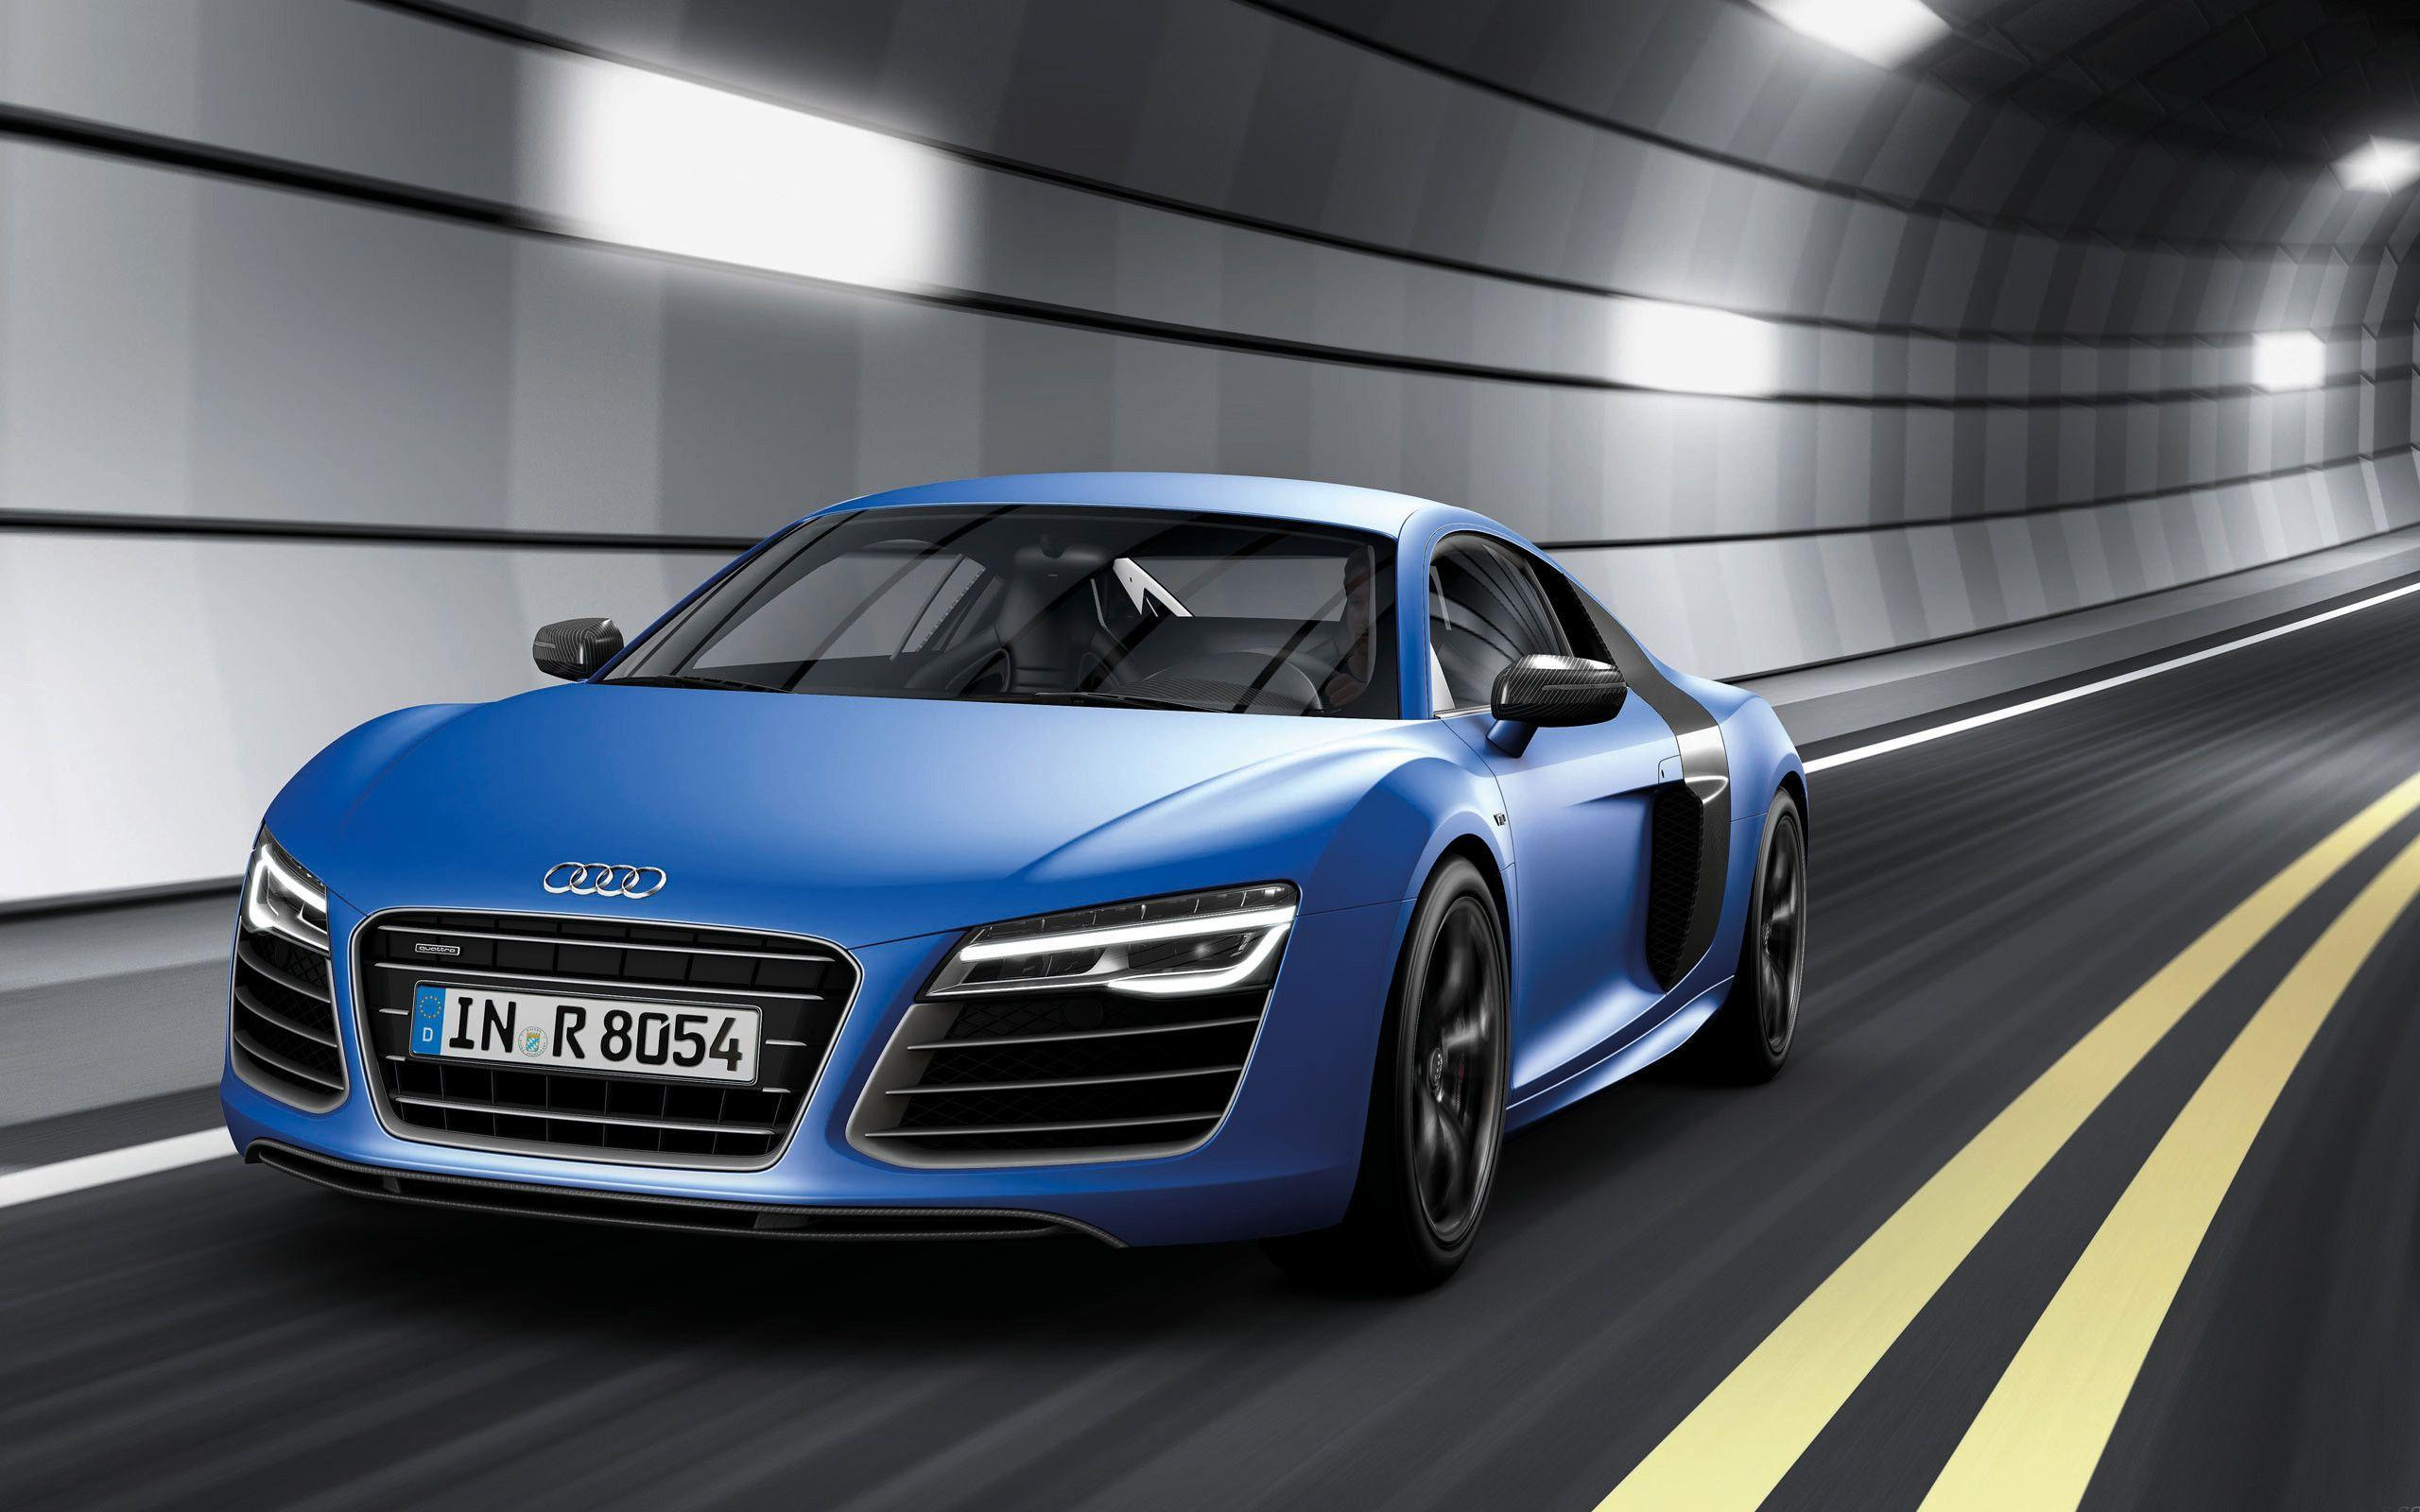 2013 Audi R8 V8 Wallpapers